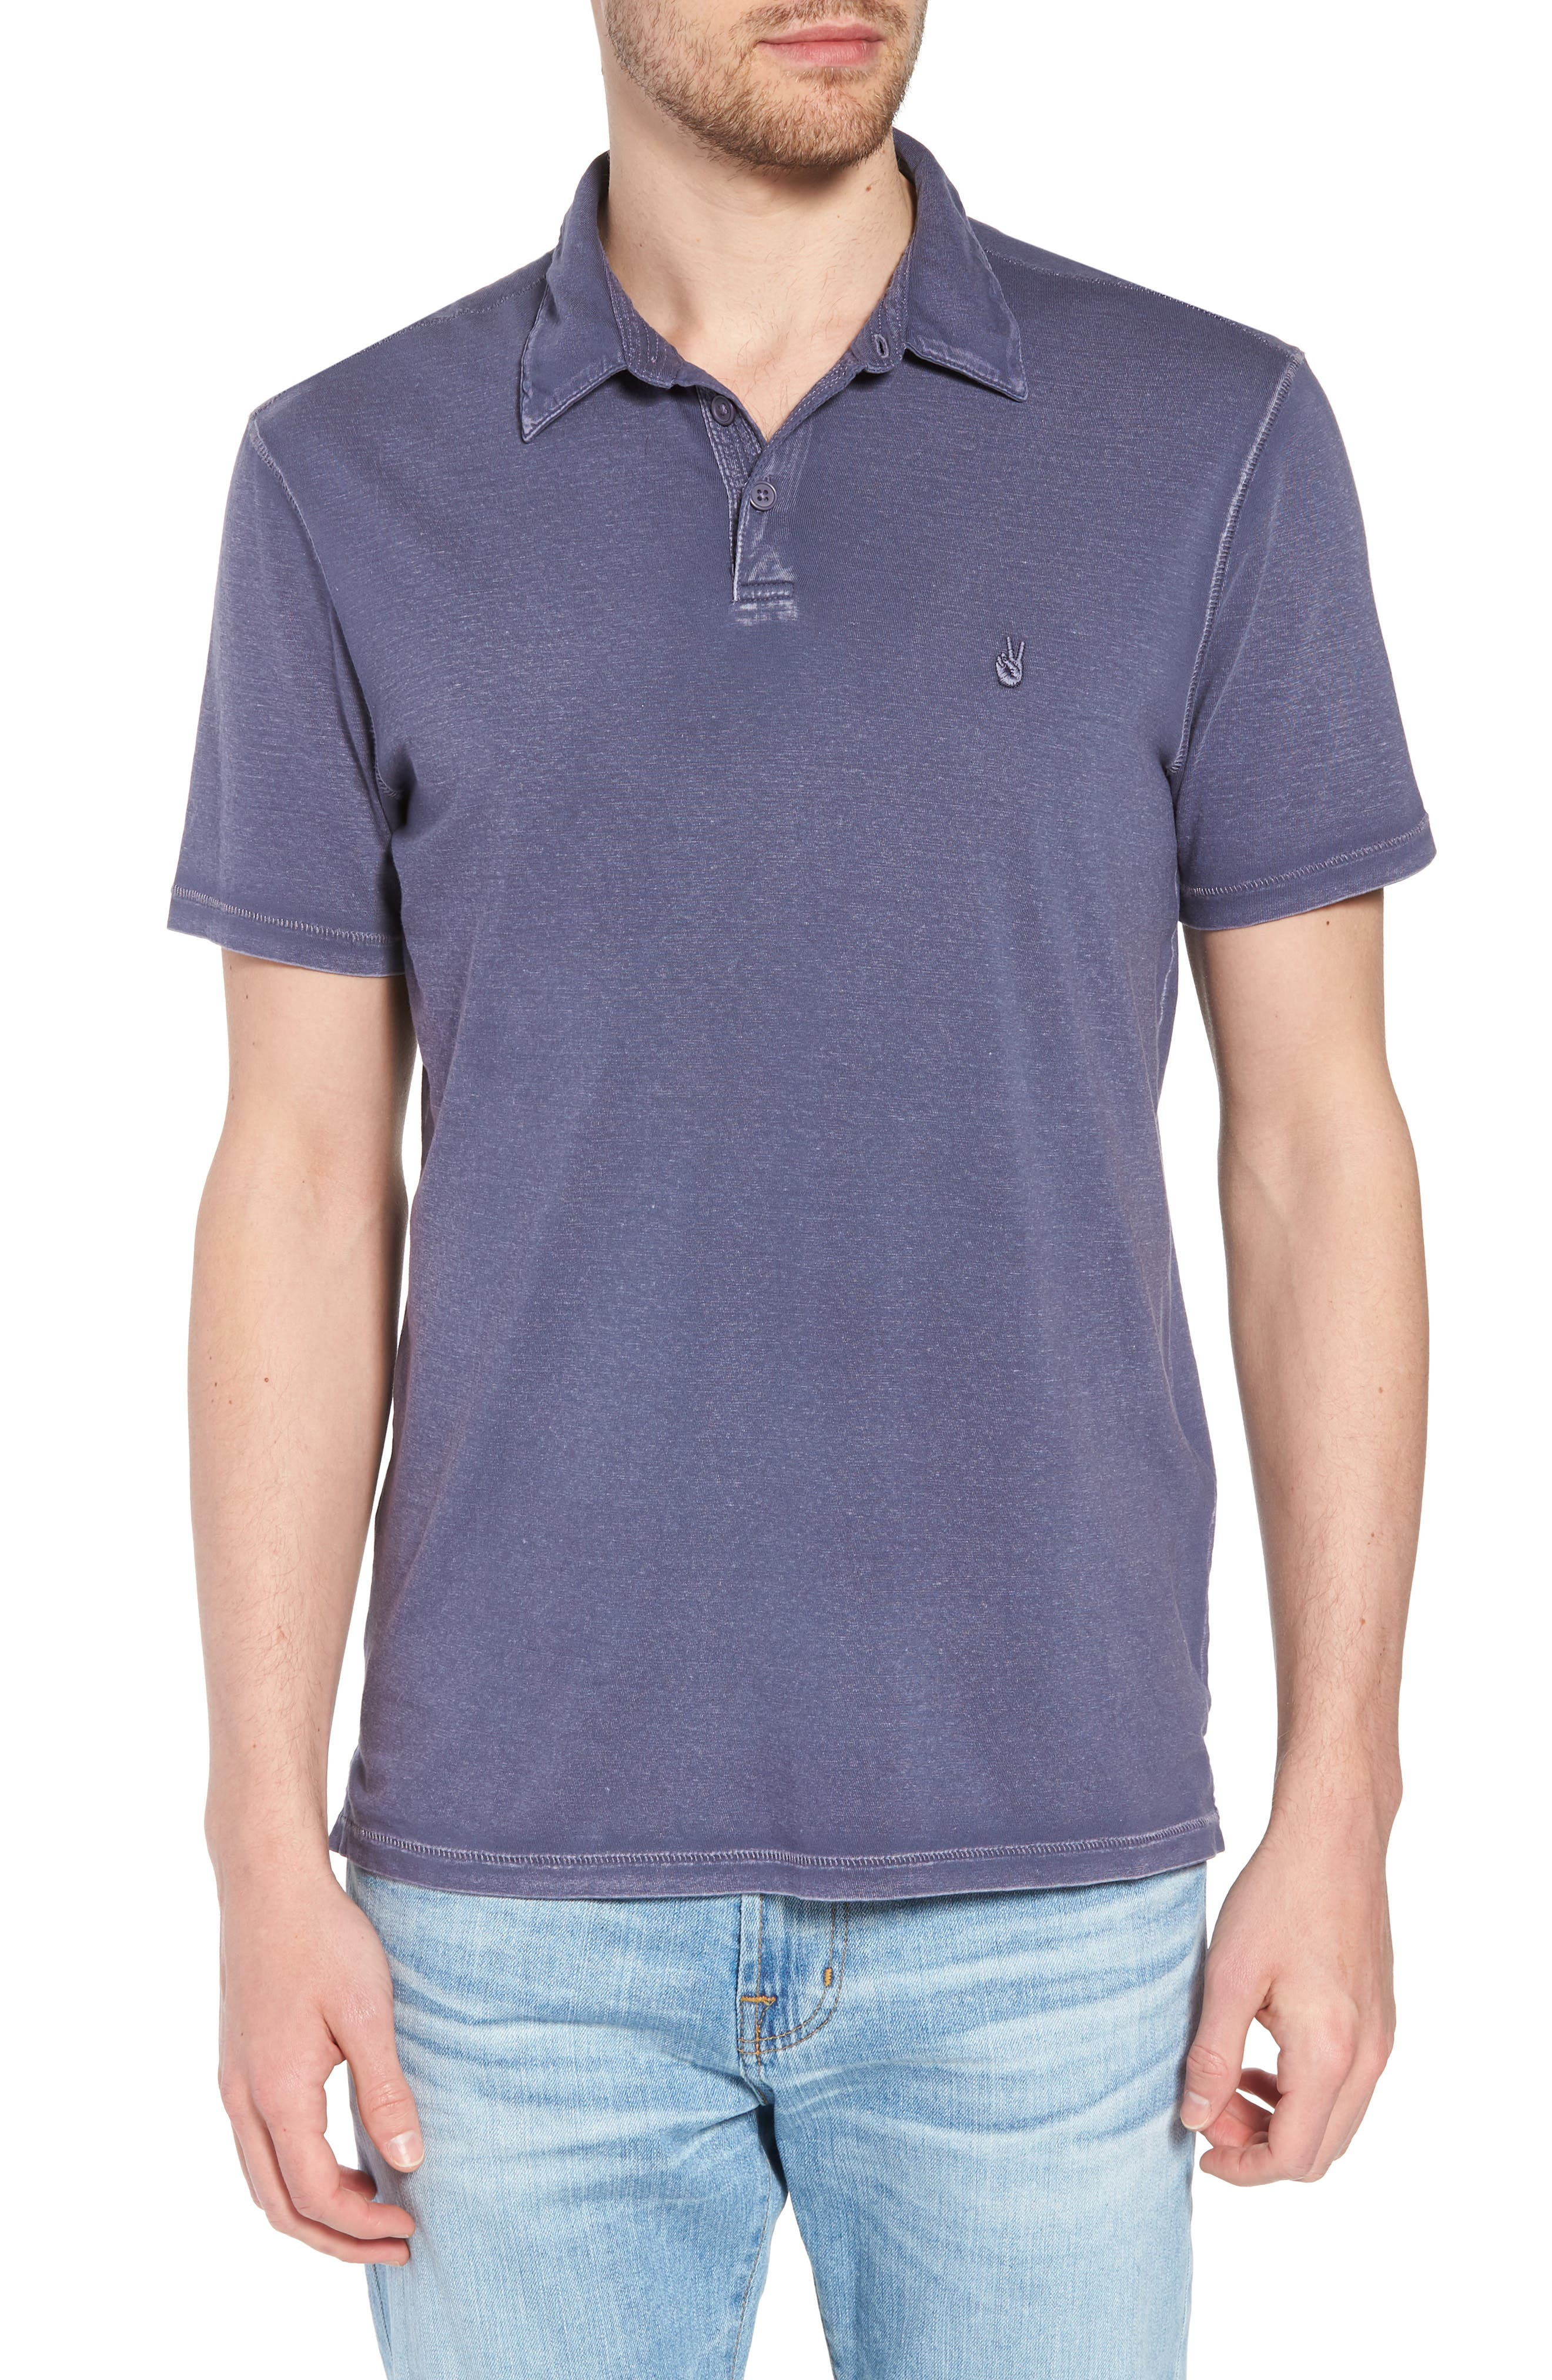 Regular Fit Polo,                             Main thumbnail 1, color,                             Dry Lavender